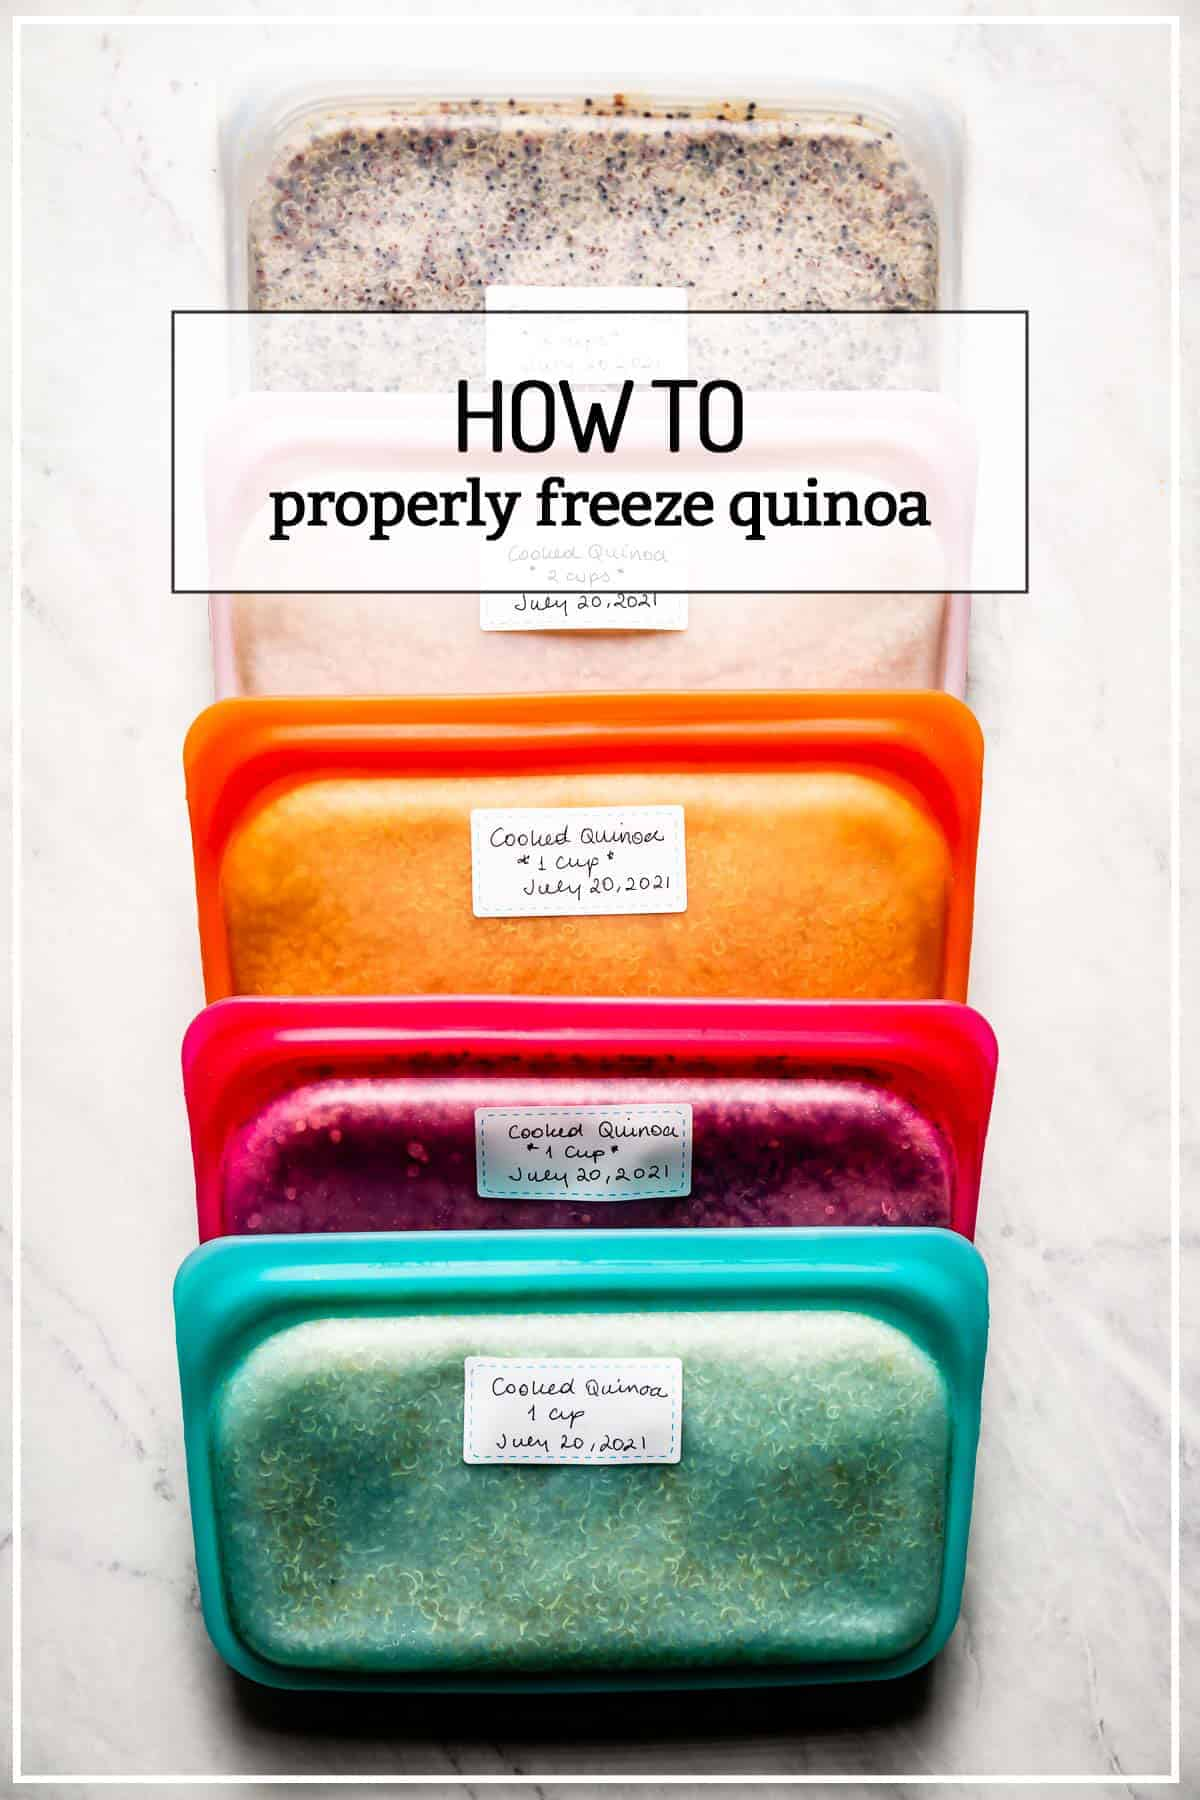 Frozen quinoa portioned out with text on the image